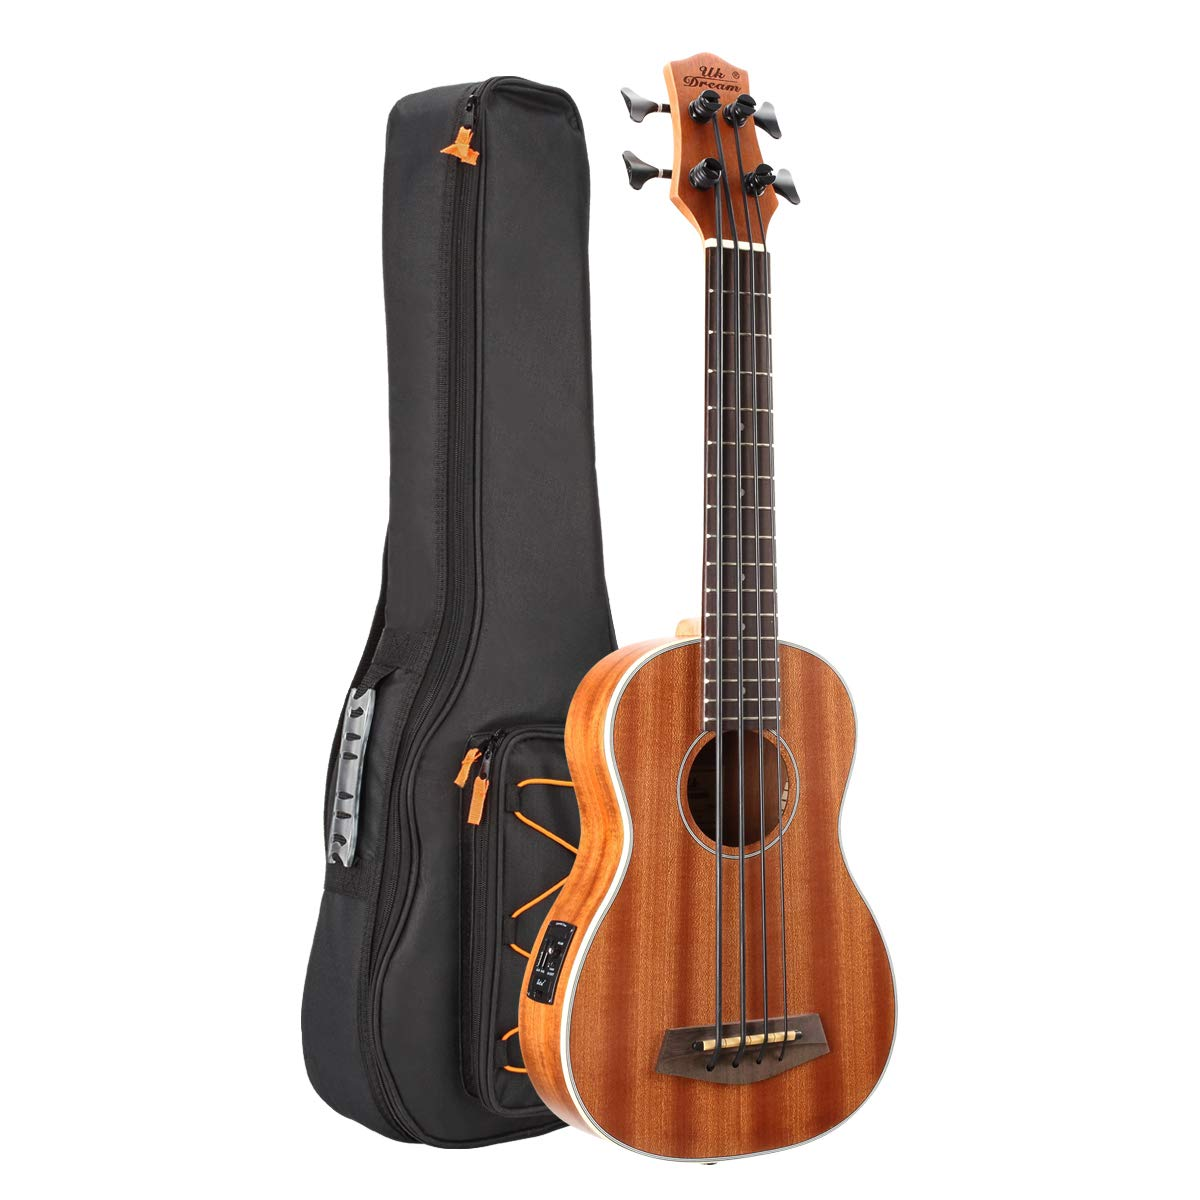 30 inch Electric Acoustic Bass Ukulele Sapele Wood with Gig Bag, Strap, Plectrum, Extra Strings UB-113 Changyun 01-UC-5CO1